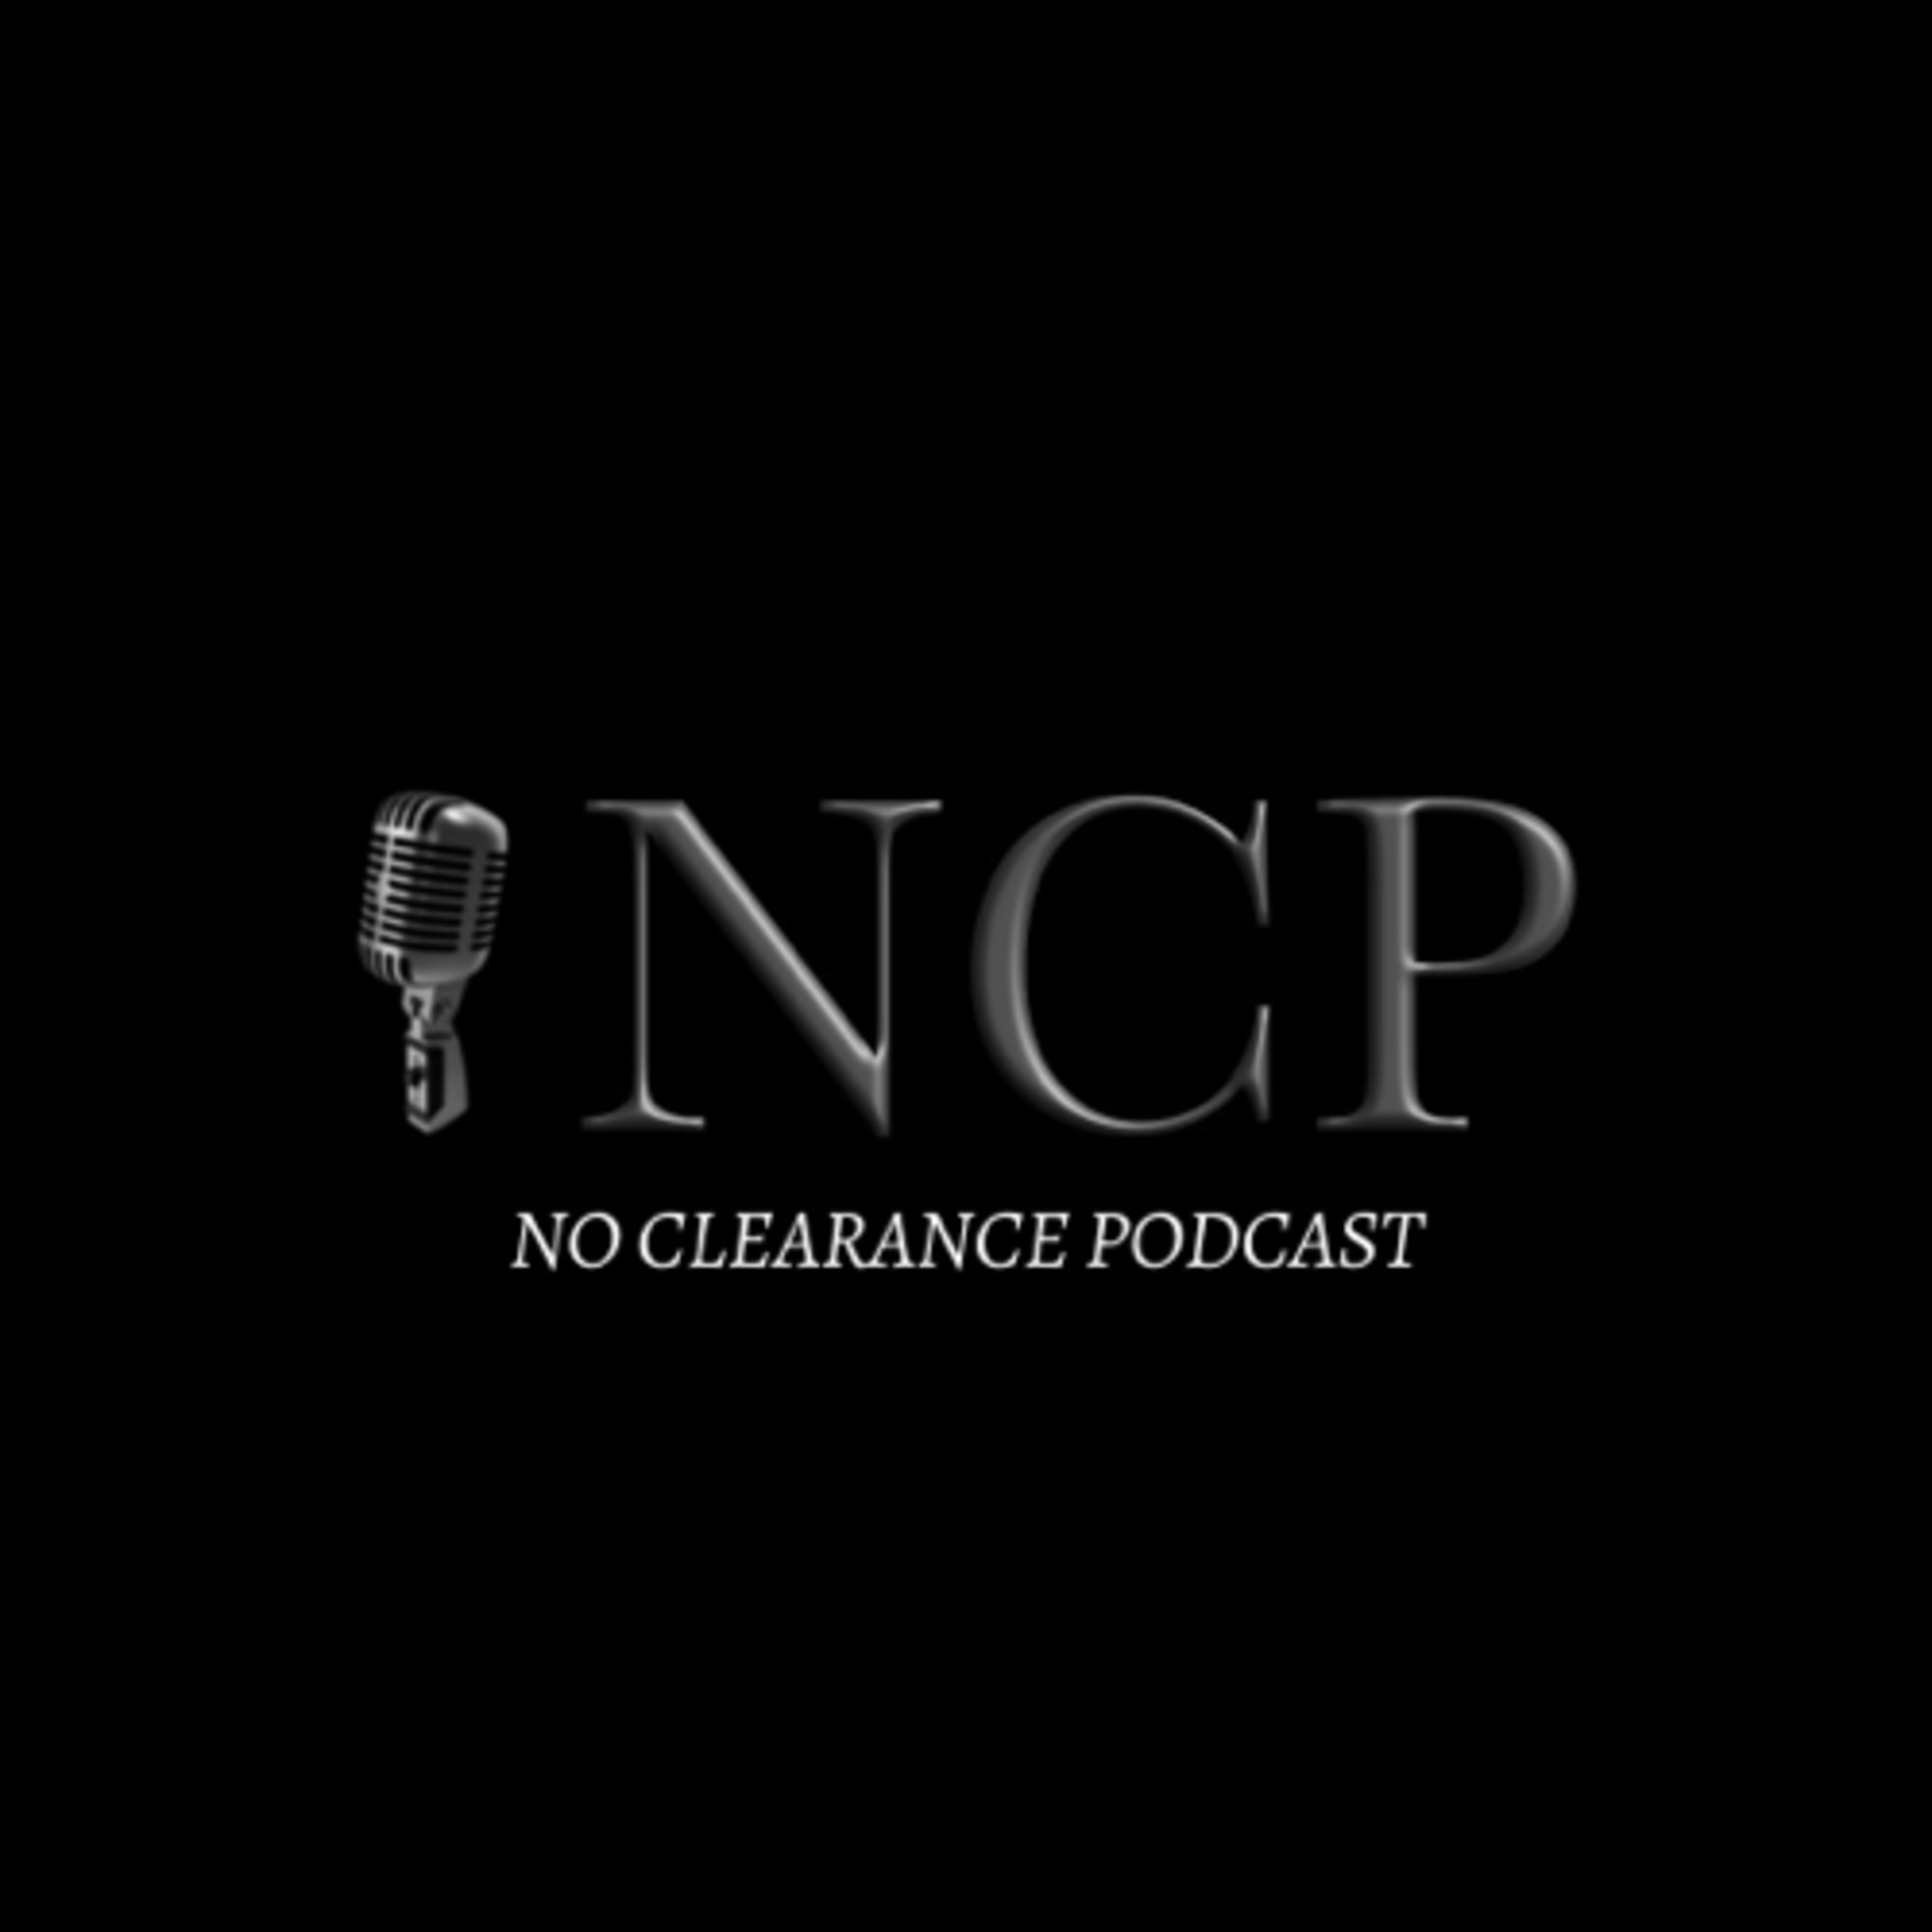 The No Clearance Podcast